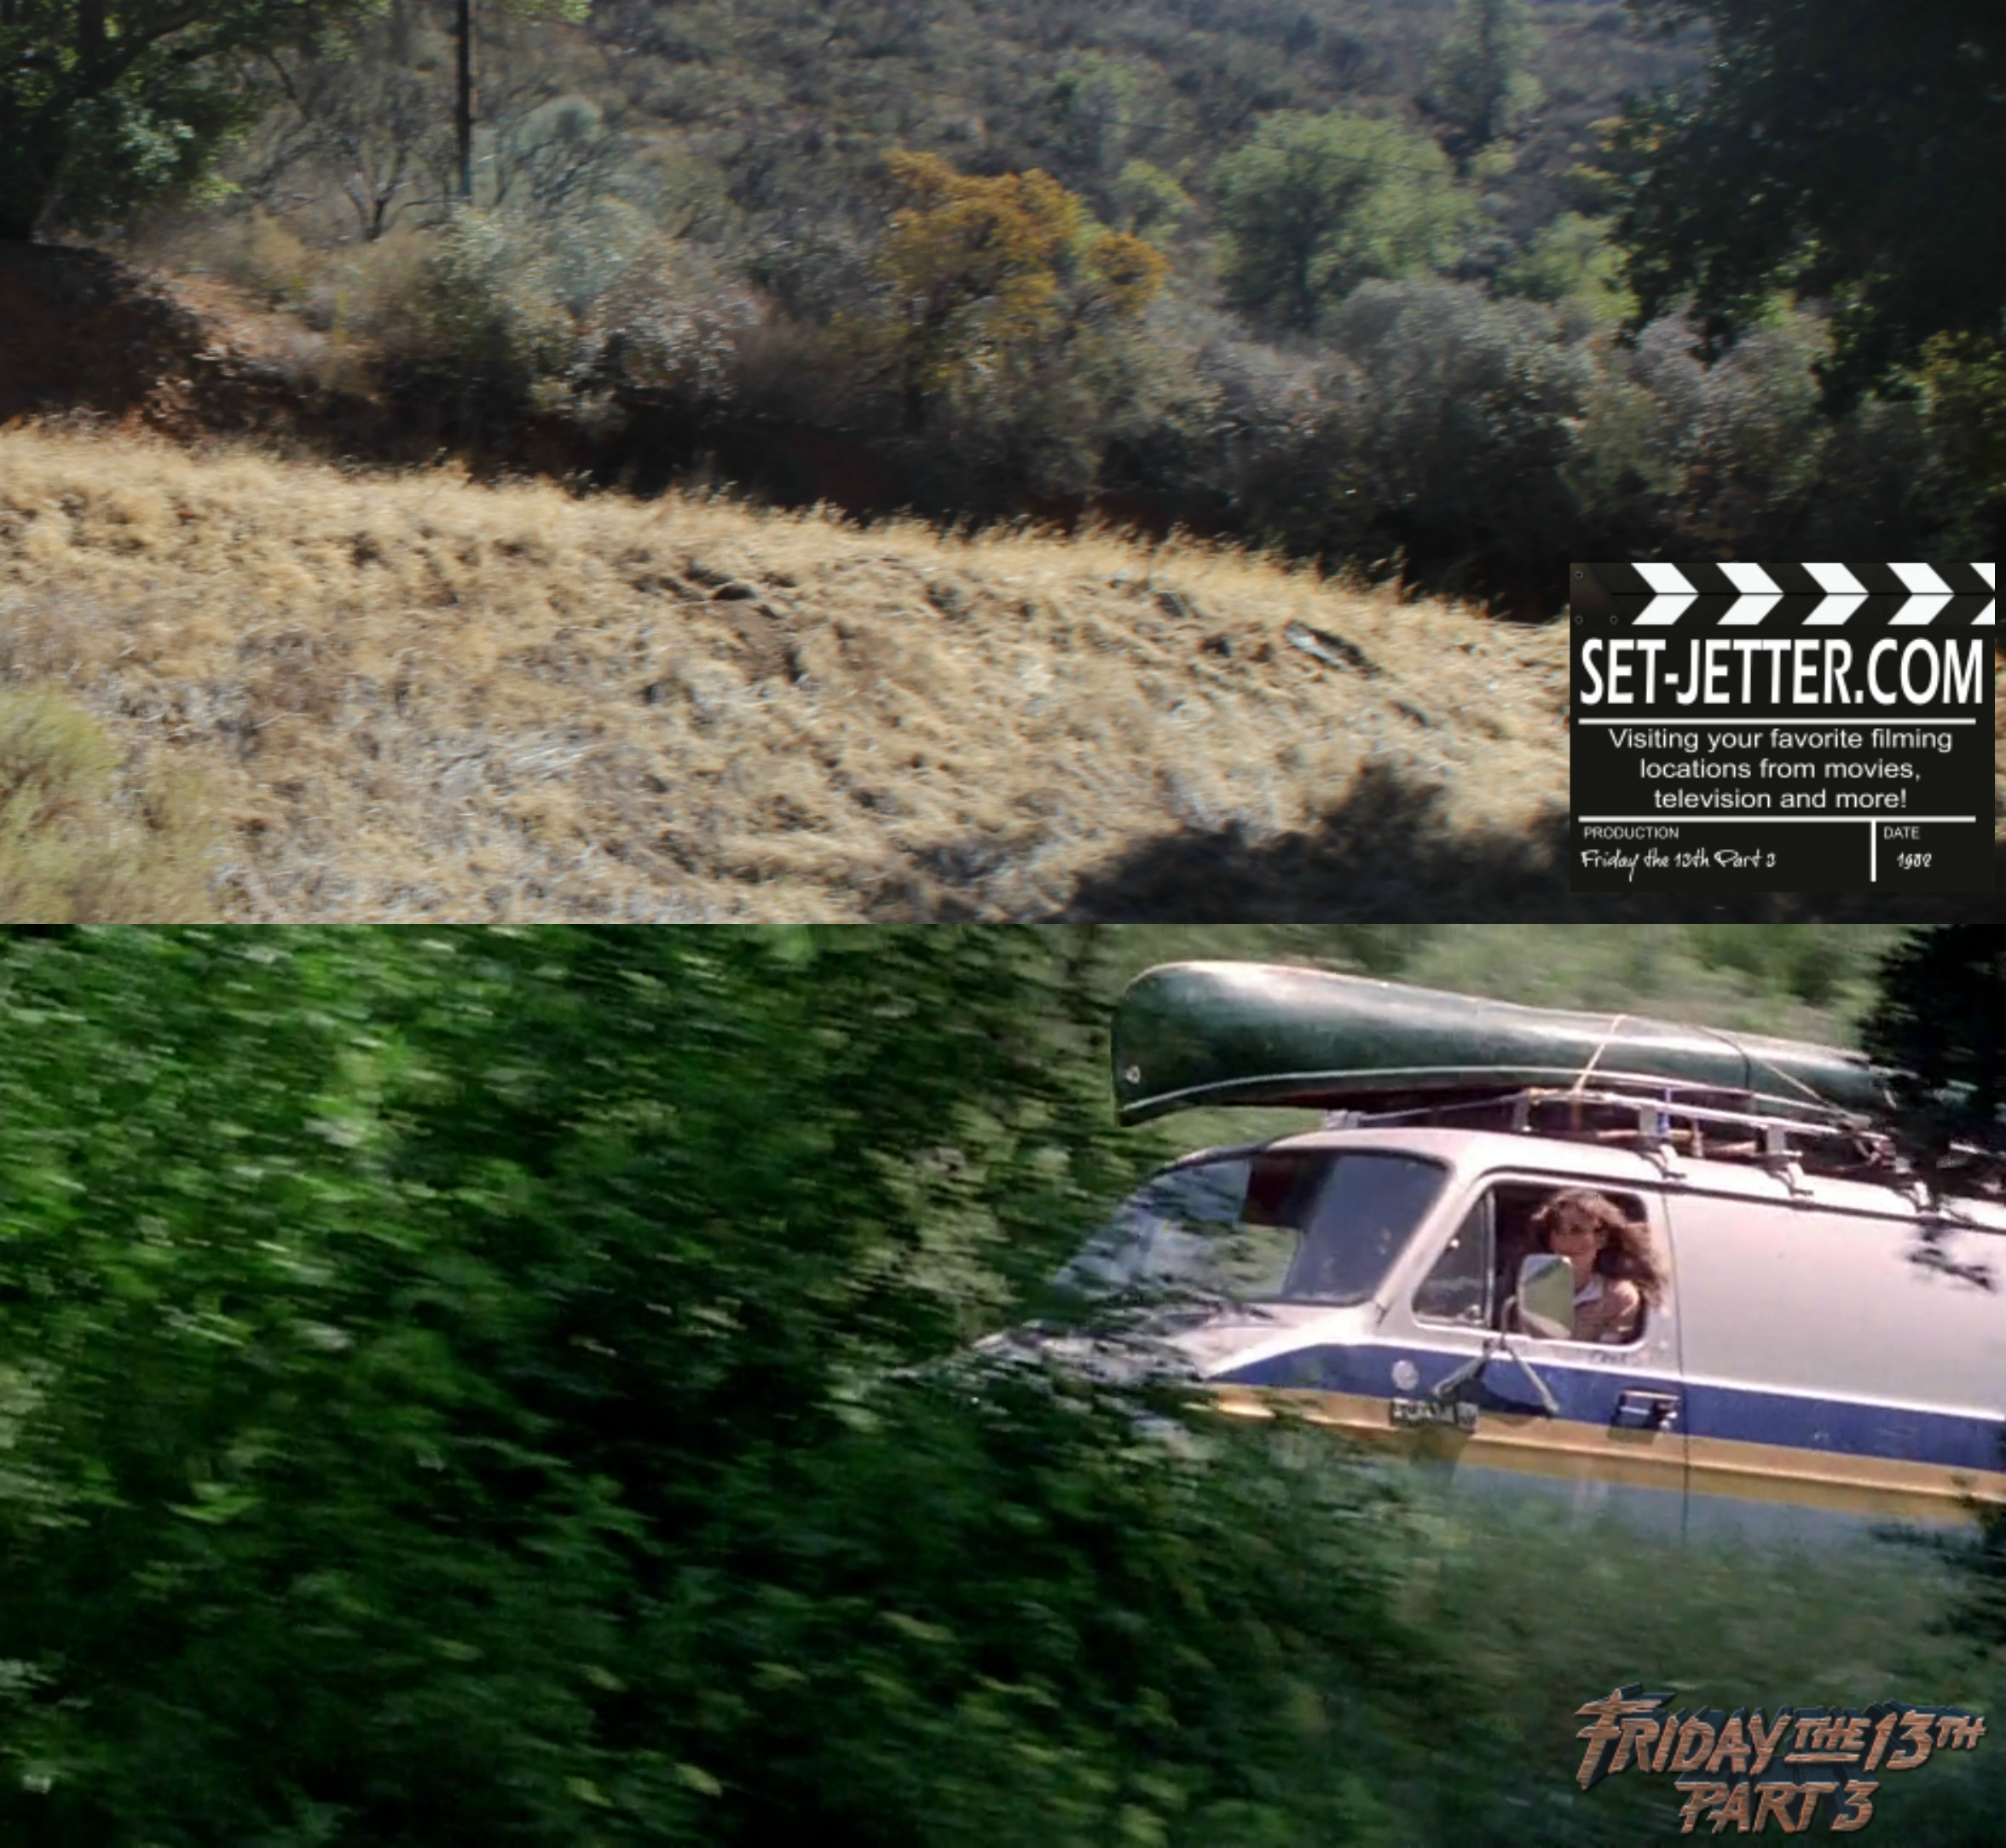 Friday the 13th Part 3 comparison 222.jpg